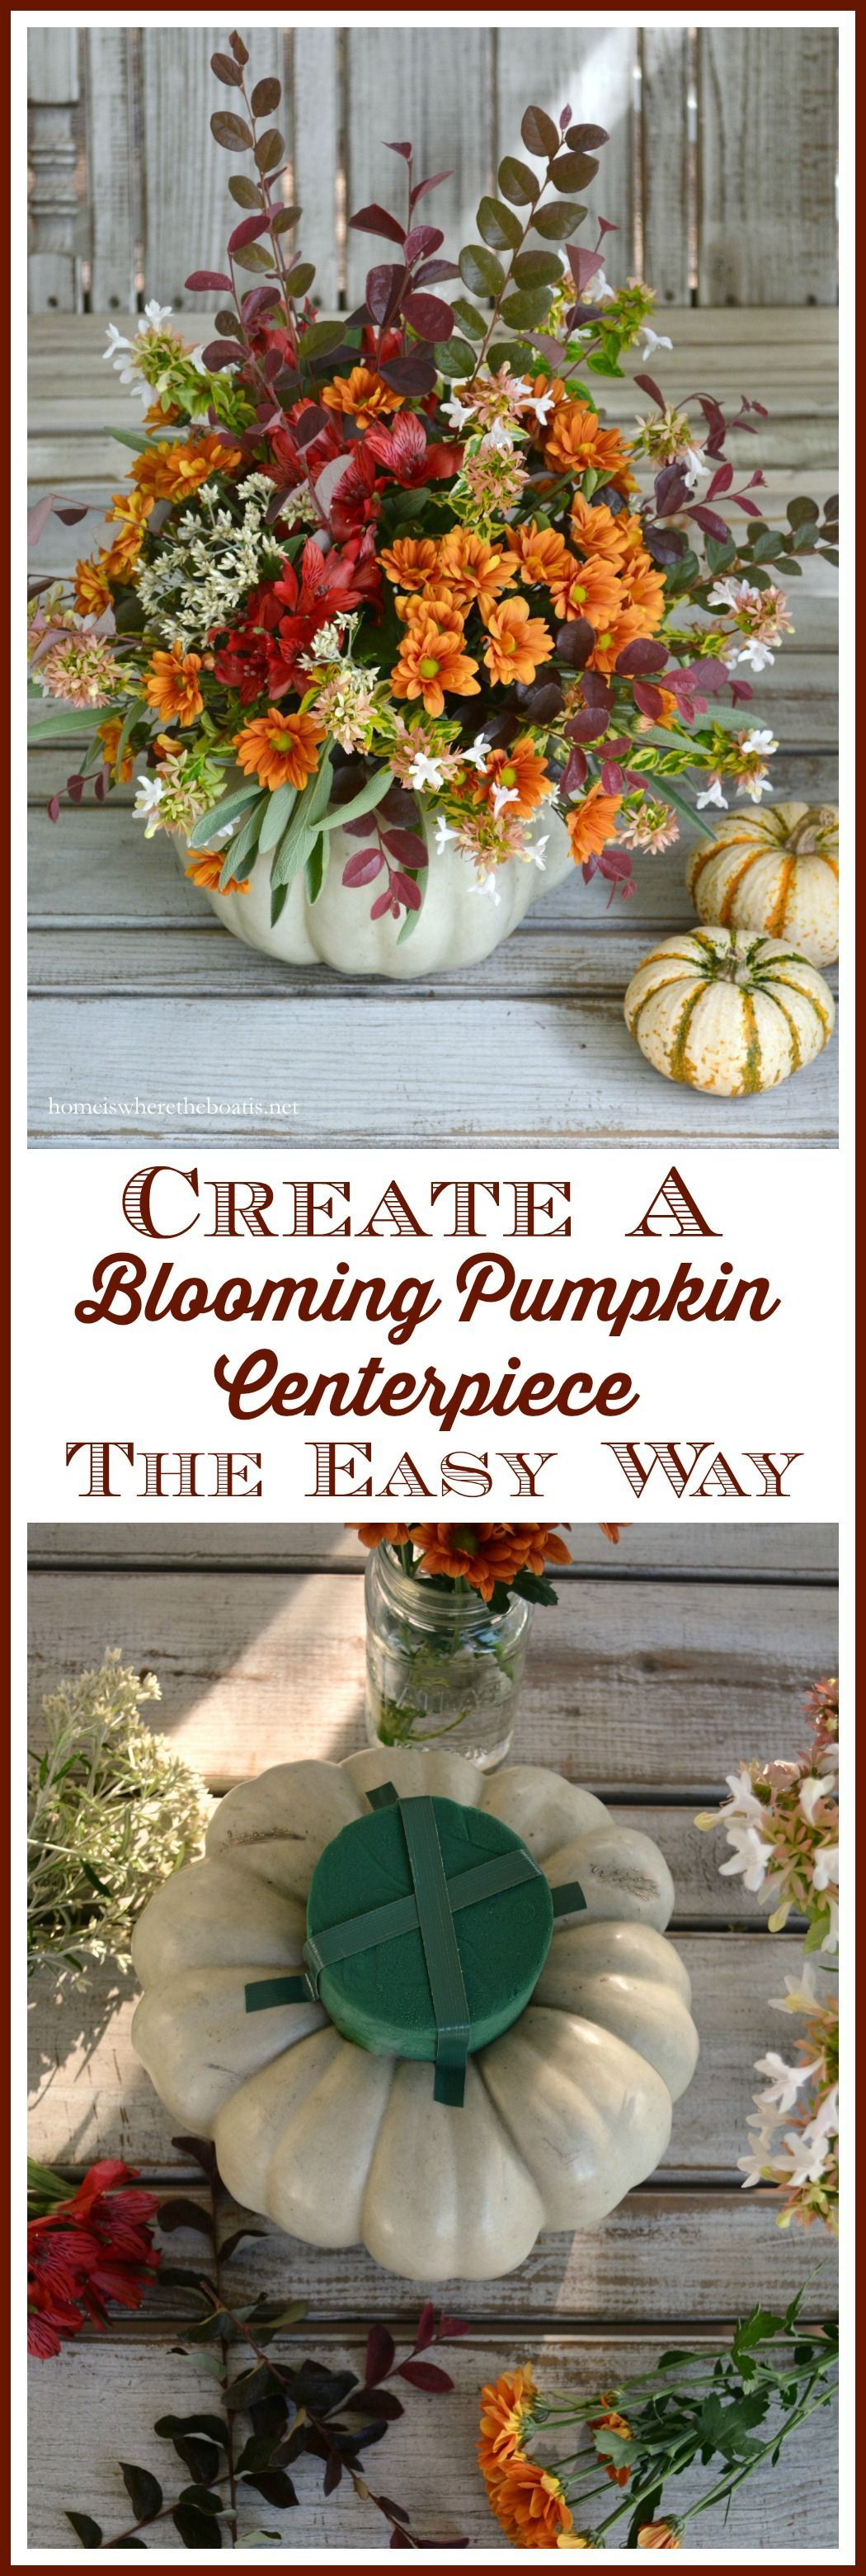 the Table: Pfaltzgraff Painted Poppies and a Blooming Pumpkin Create a Pumpkin Floral Centerpiece the easy way, no carving required!Create a Pumpkin Floral Centerpiece the easy way, no carving required!